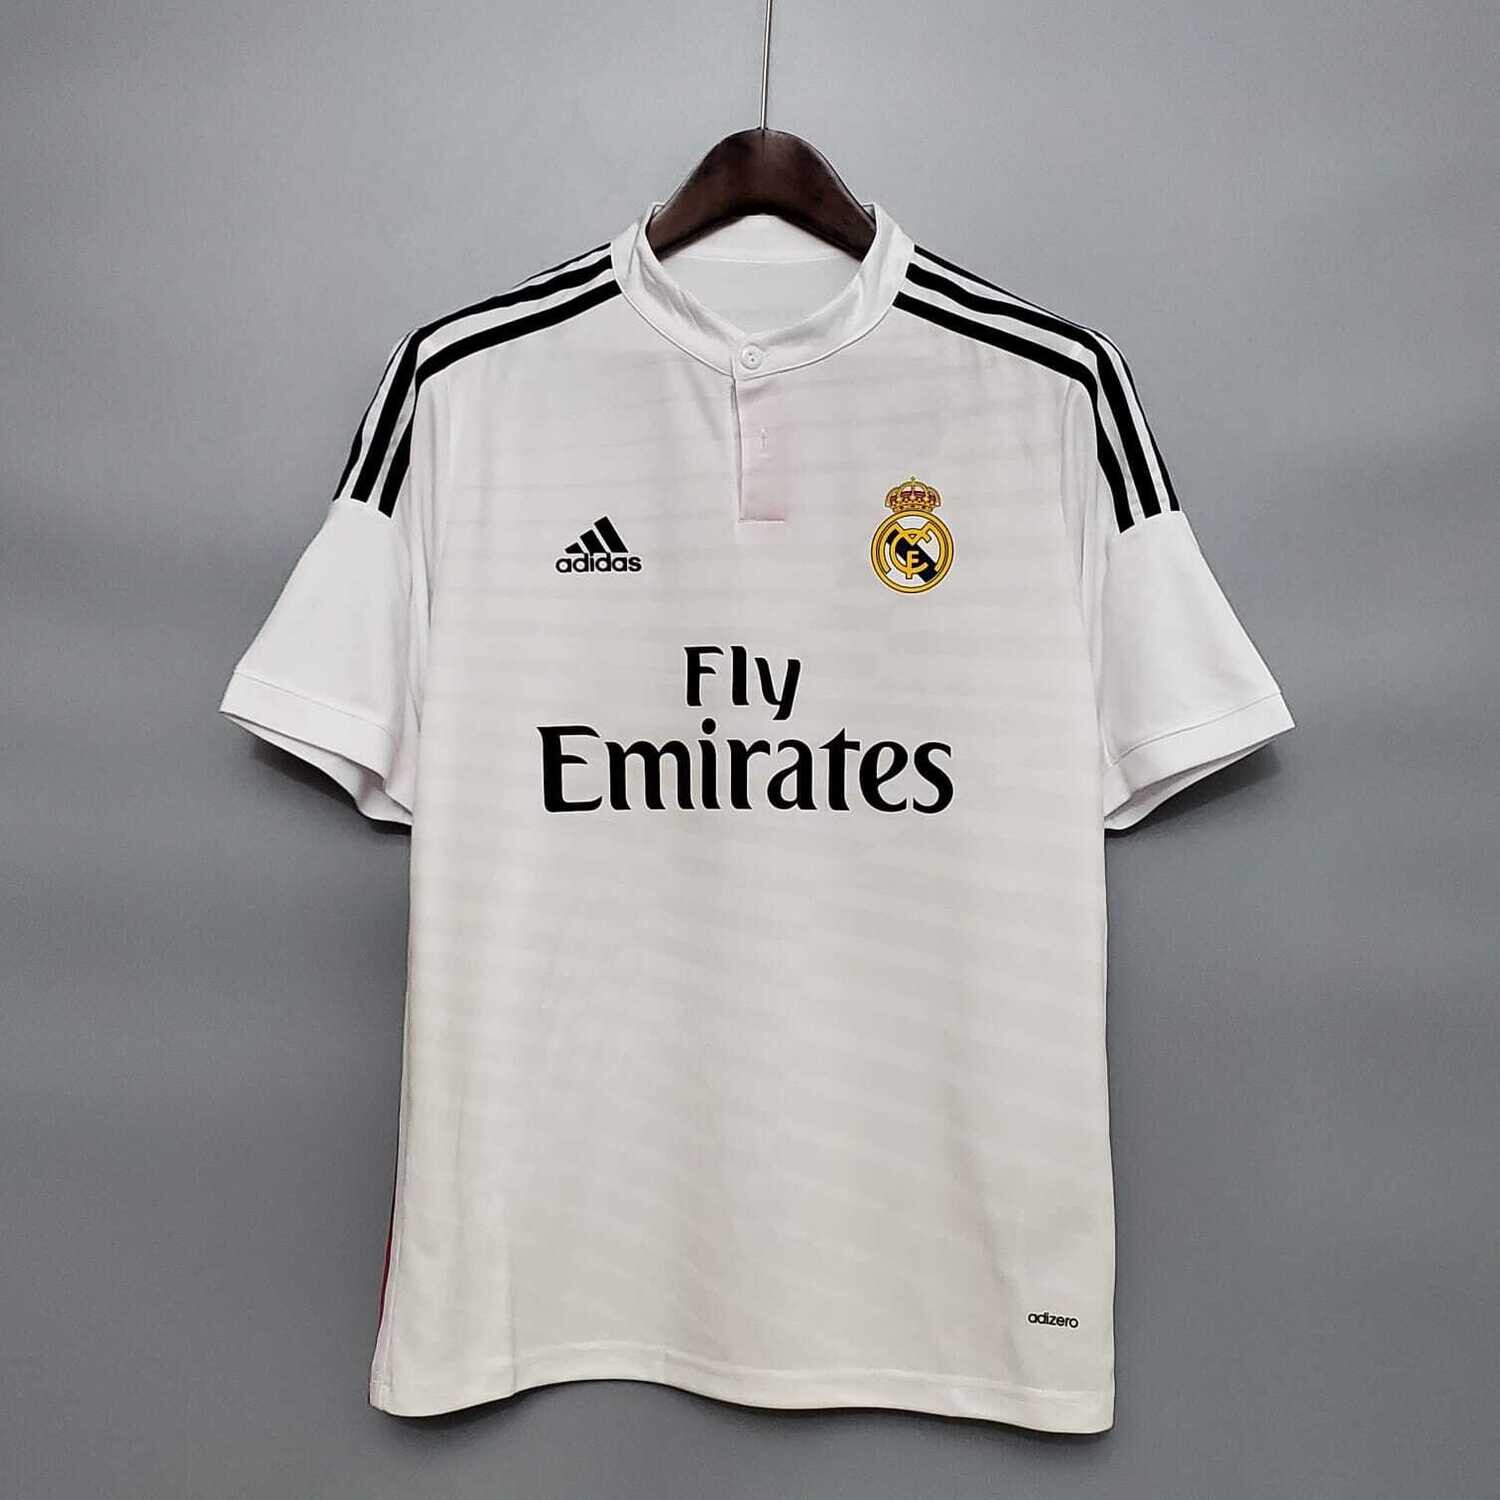 Real Madrid 2014-15 Home Jersey [Pre-paid Only]